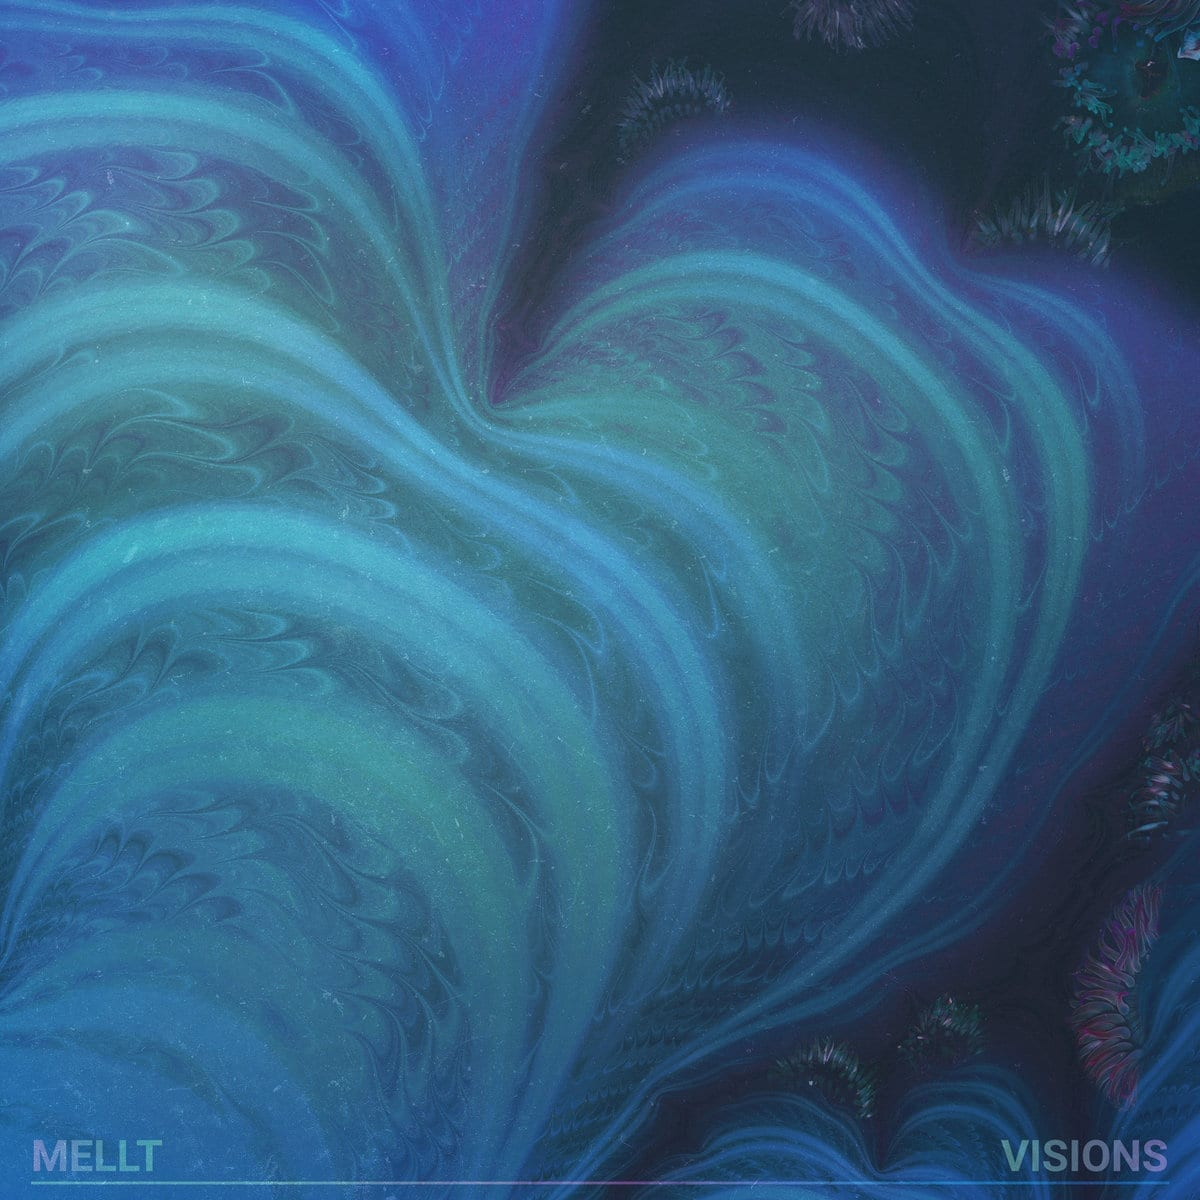 EP Review: Visions // Mellt